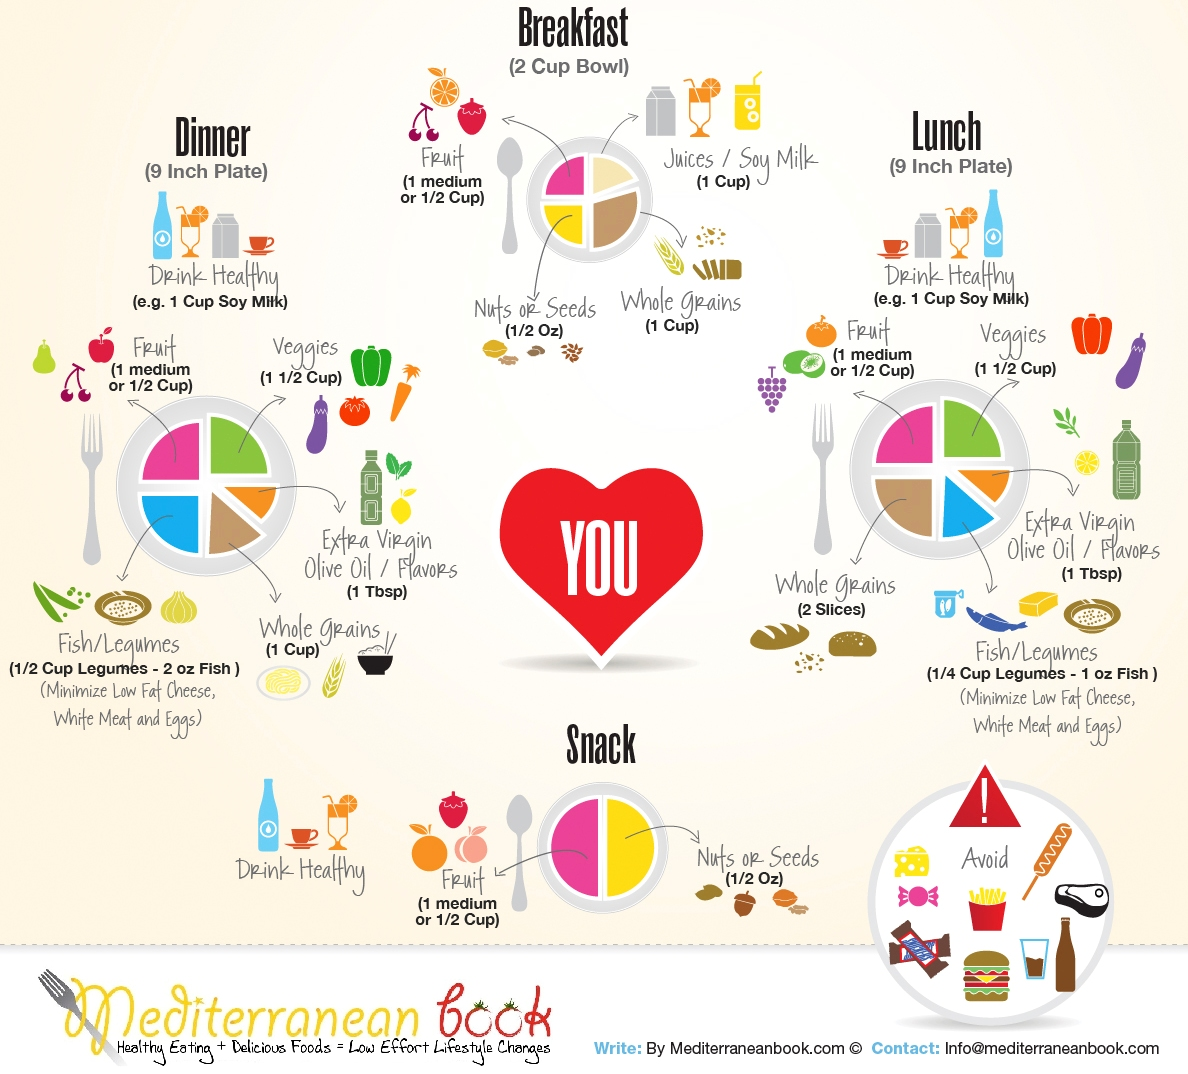 cholesterol food chart: Best foods for high cholesterol levels